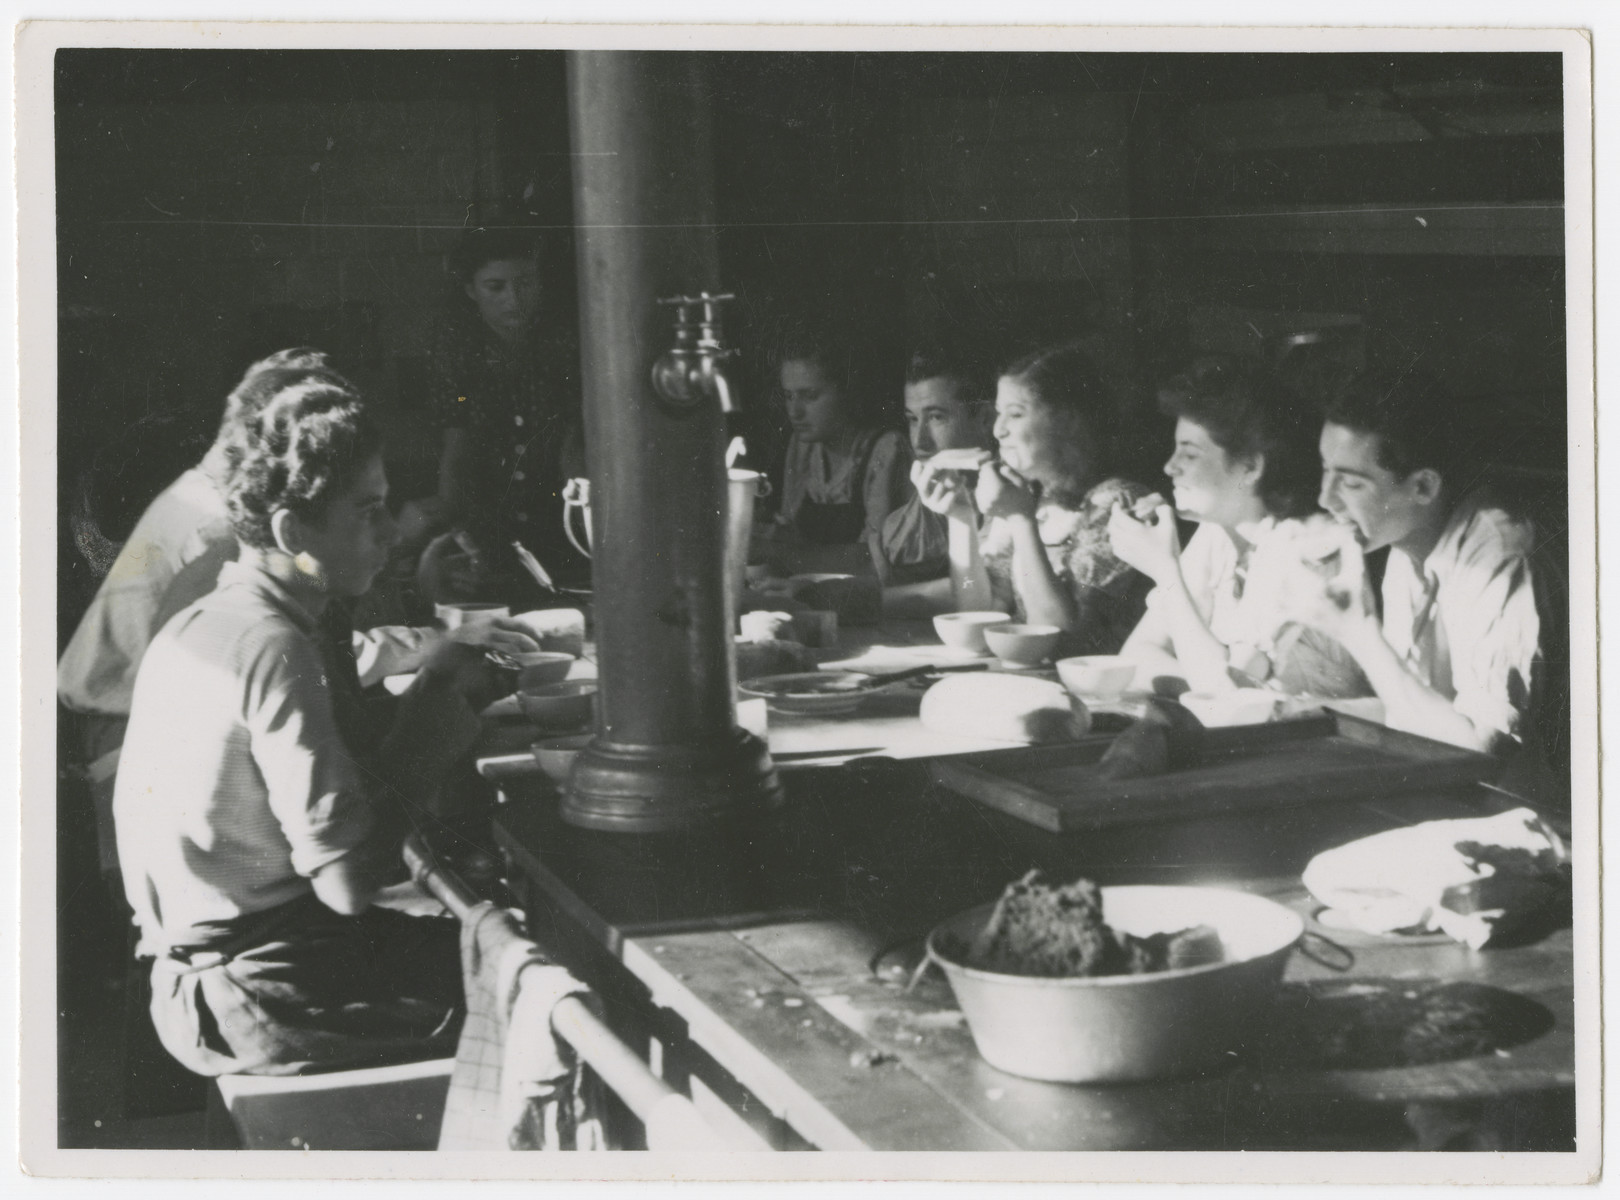 Zionist youth, some who came to Switzerland on the Kasztner transport, share a meal in the dining room of a kibbutz hachshara near Bern.  Eva Weinberger is pictured sixth from the right.